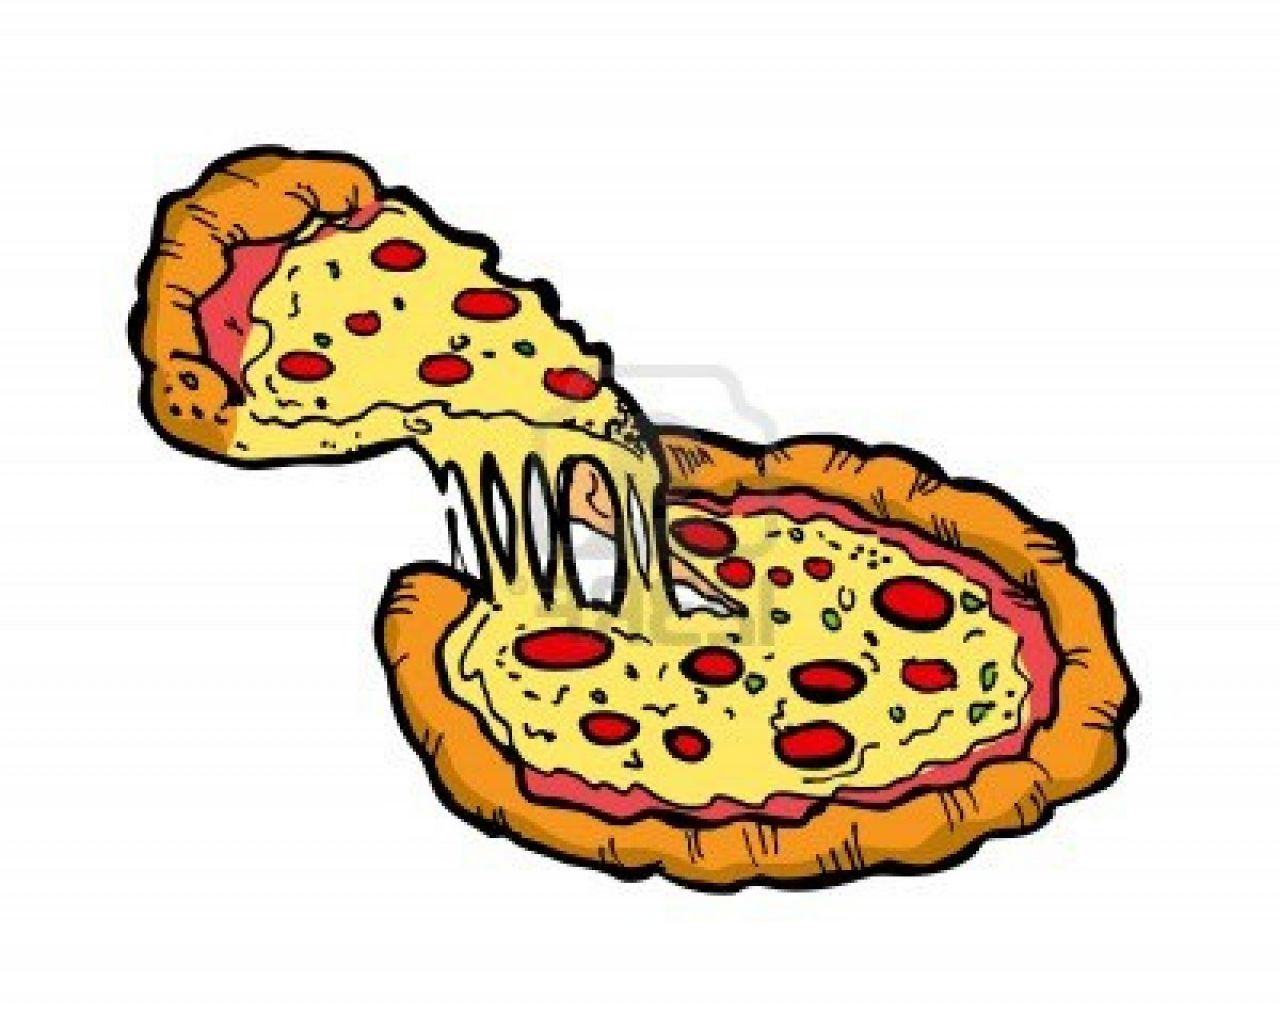 1280x1014 Pizza Clipart, Suggestions For Pizza Clipart, Download Pizza Clipart